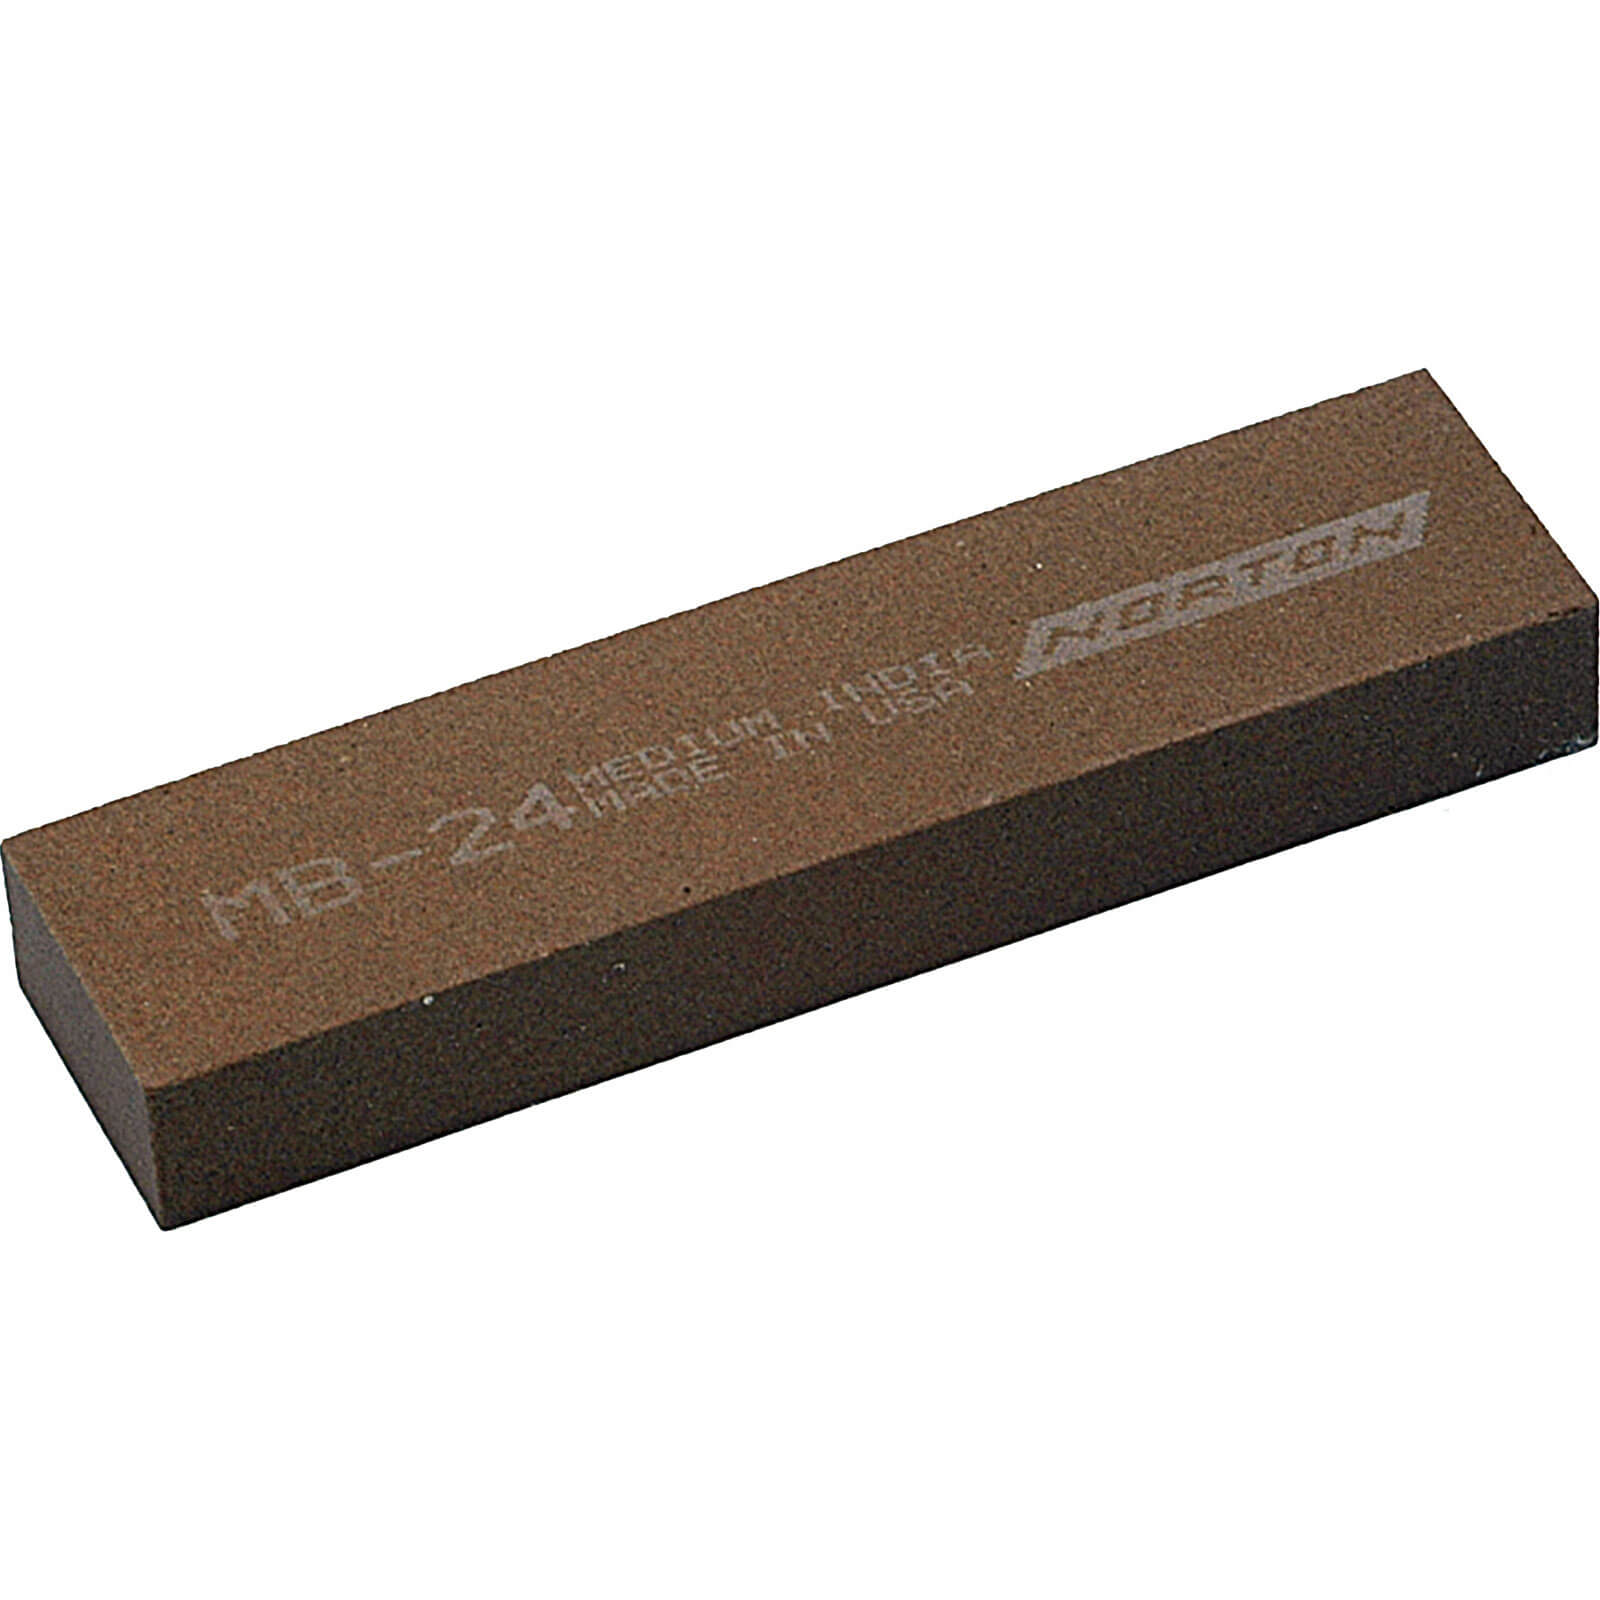 Image of Norton India Bench Stone 25mm 100mm Medium